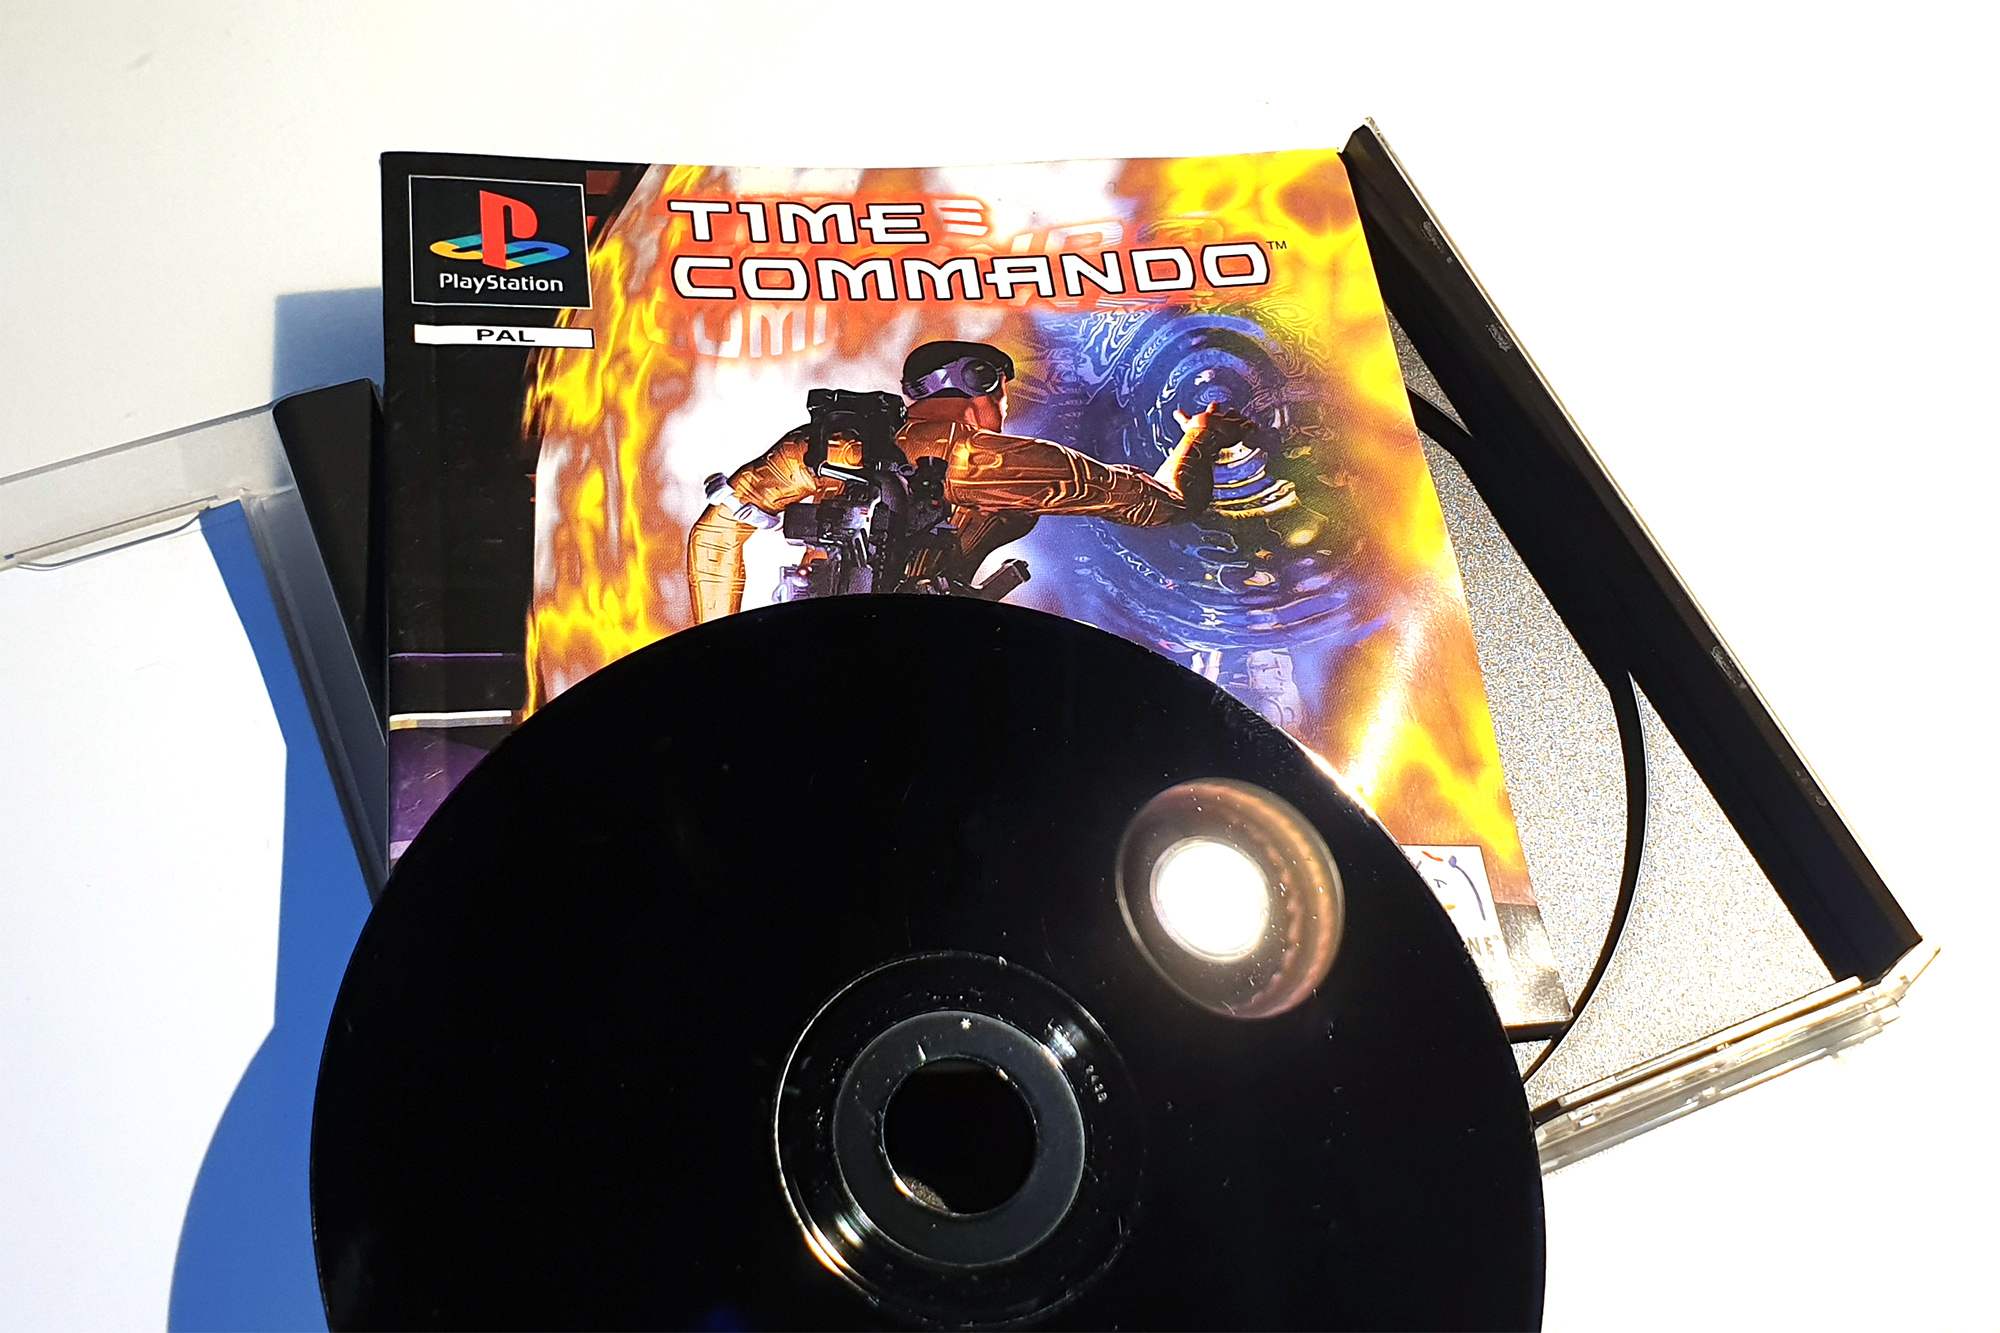 Time Commando PlayStation CD Disc 25 Jahre